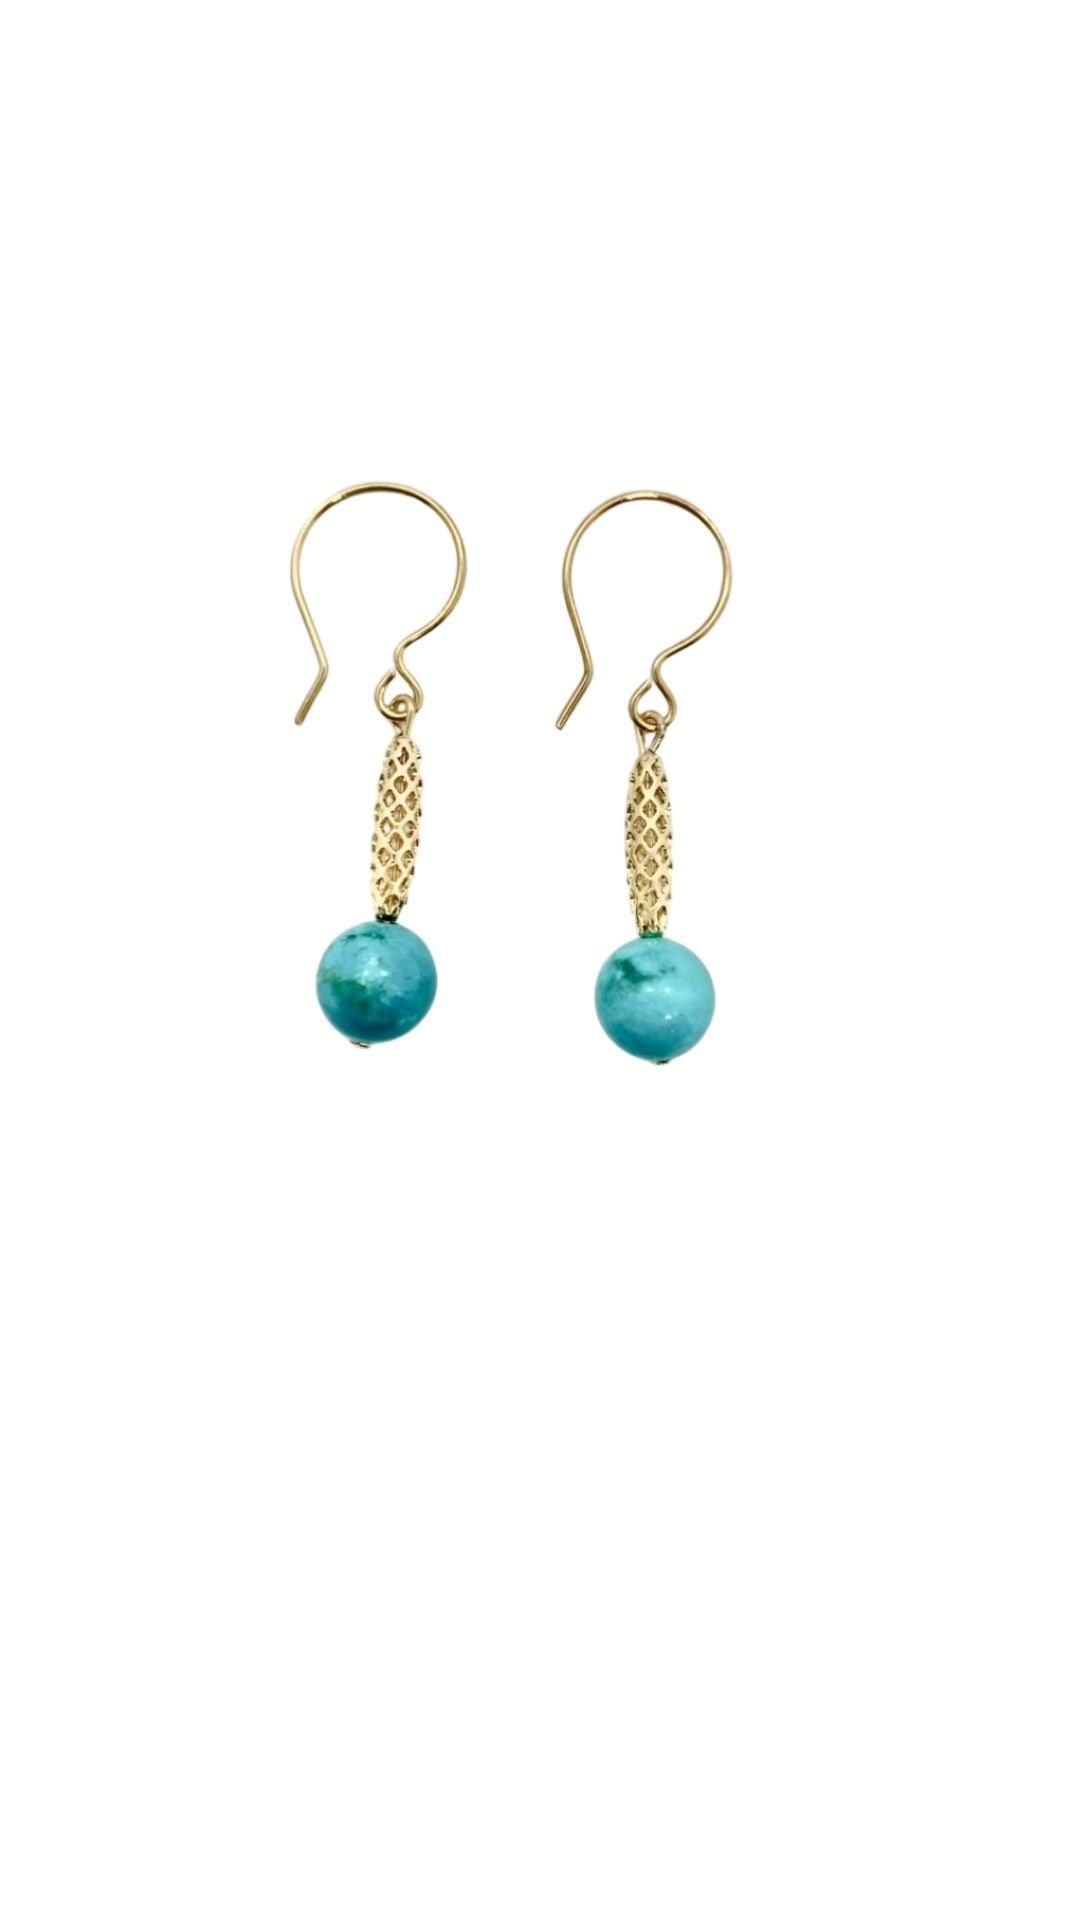 Turquoise and Gold Charm Earrings - shop idPearl